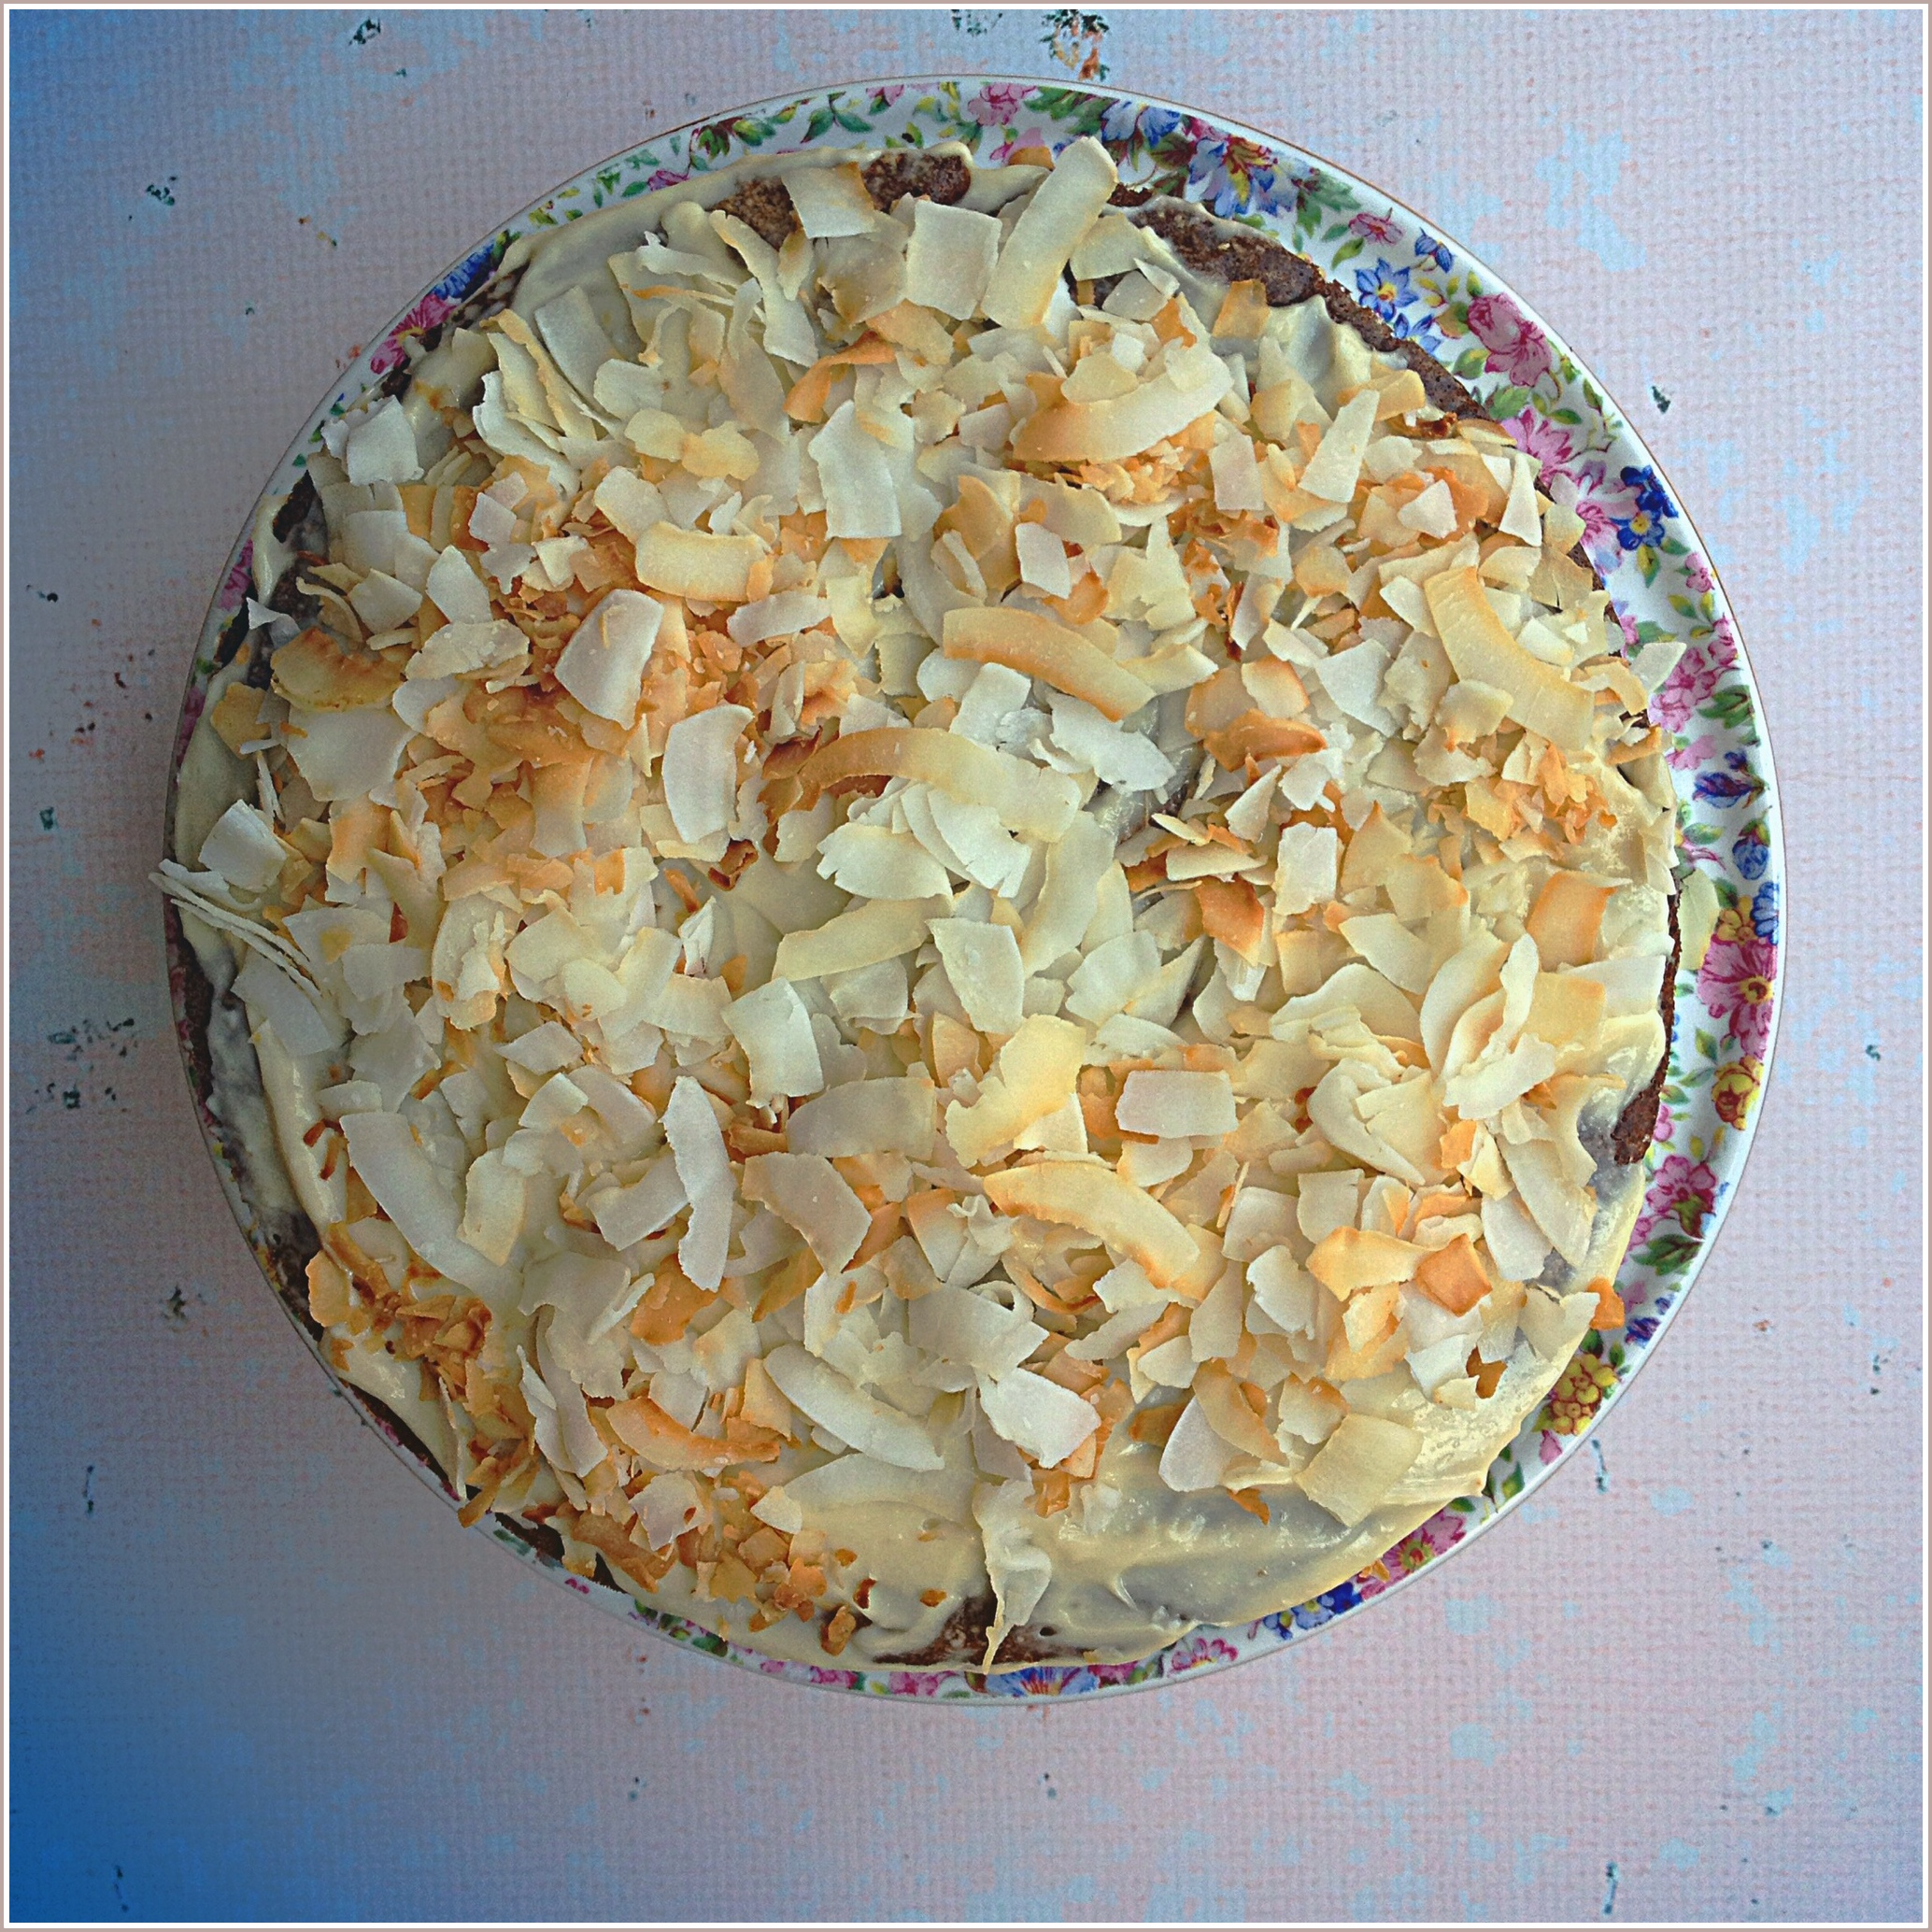 Carrot and Coconut Cake with Blues by Dena T Bray ©